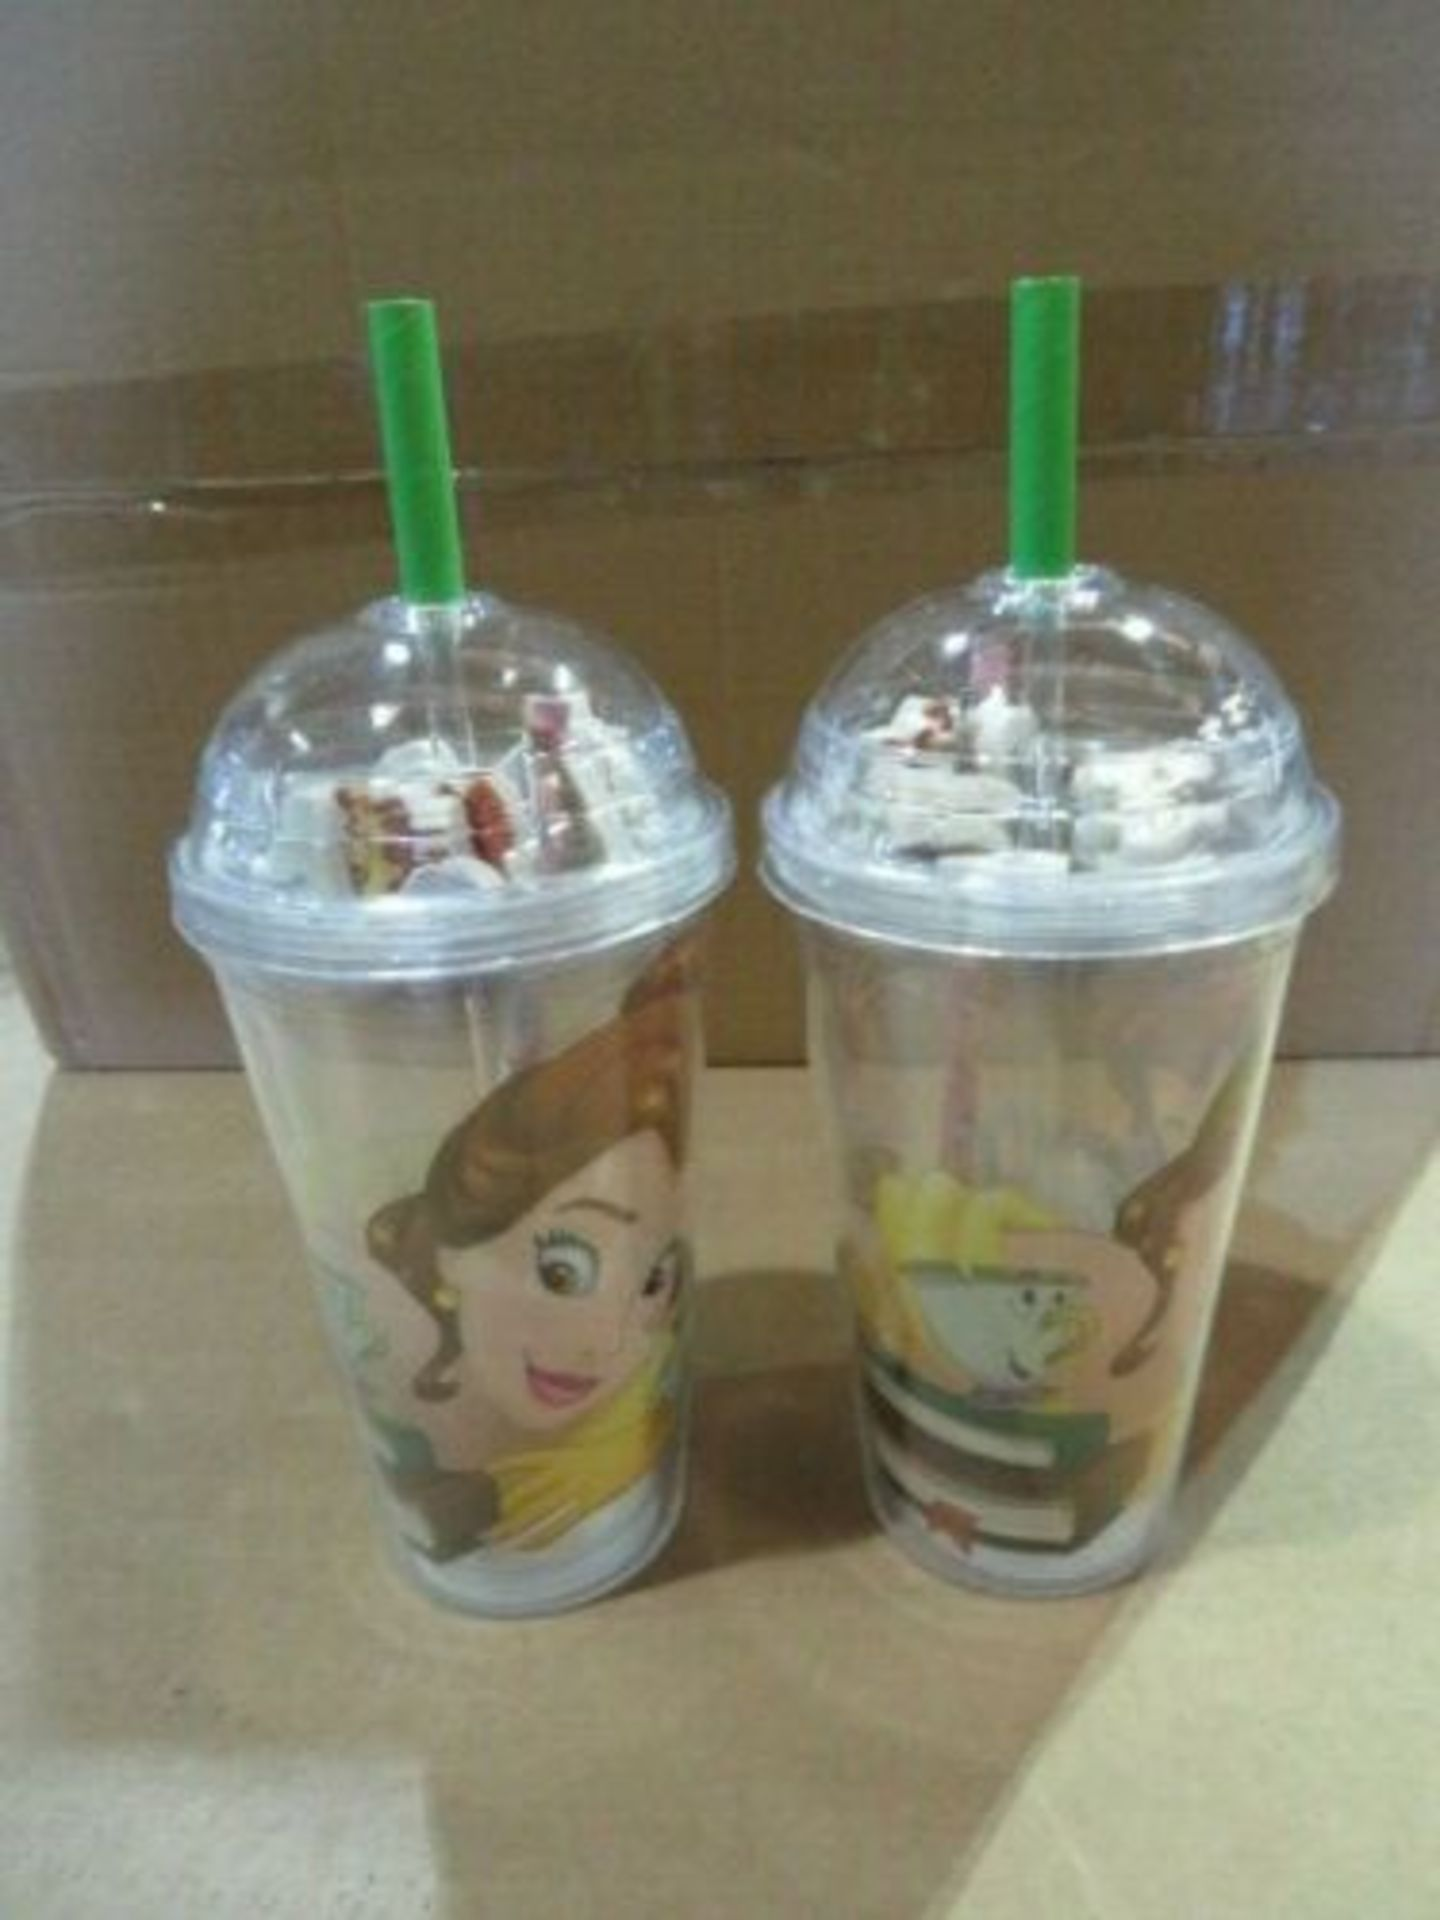 Lot 322 - WHOLESALE JOB LOT 24 X NEW DISNEY BEAUTY AND THE BEAST CUP WITH ERASERS & PENCIL. WHOLESALE JOB...